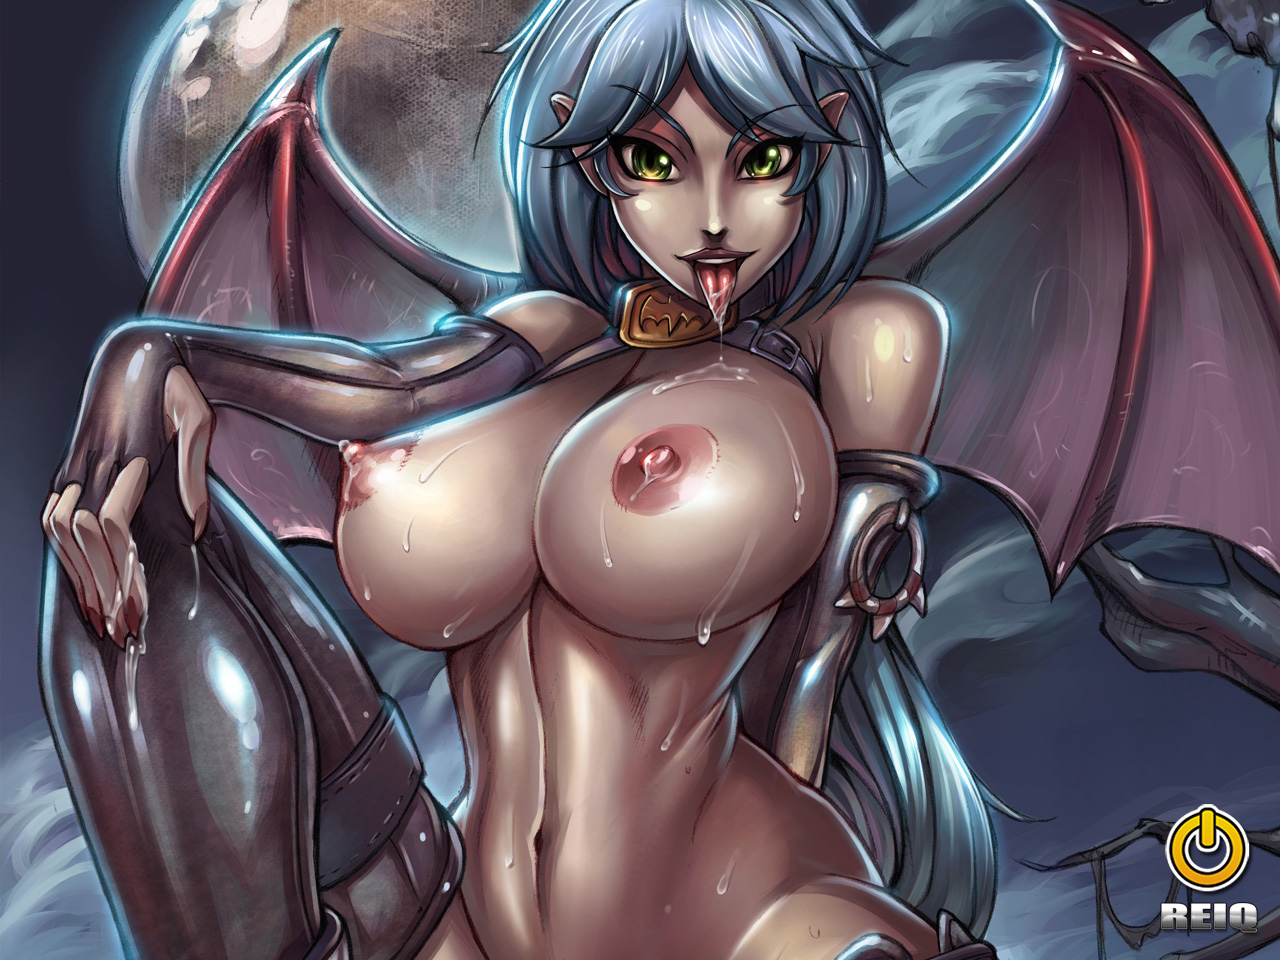 Succubus naked and having sex anime sexy movie